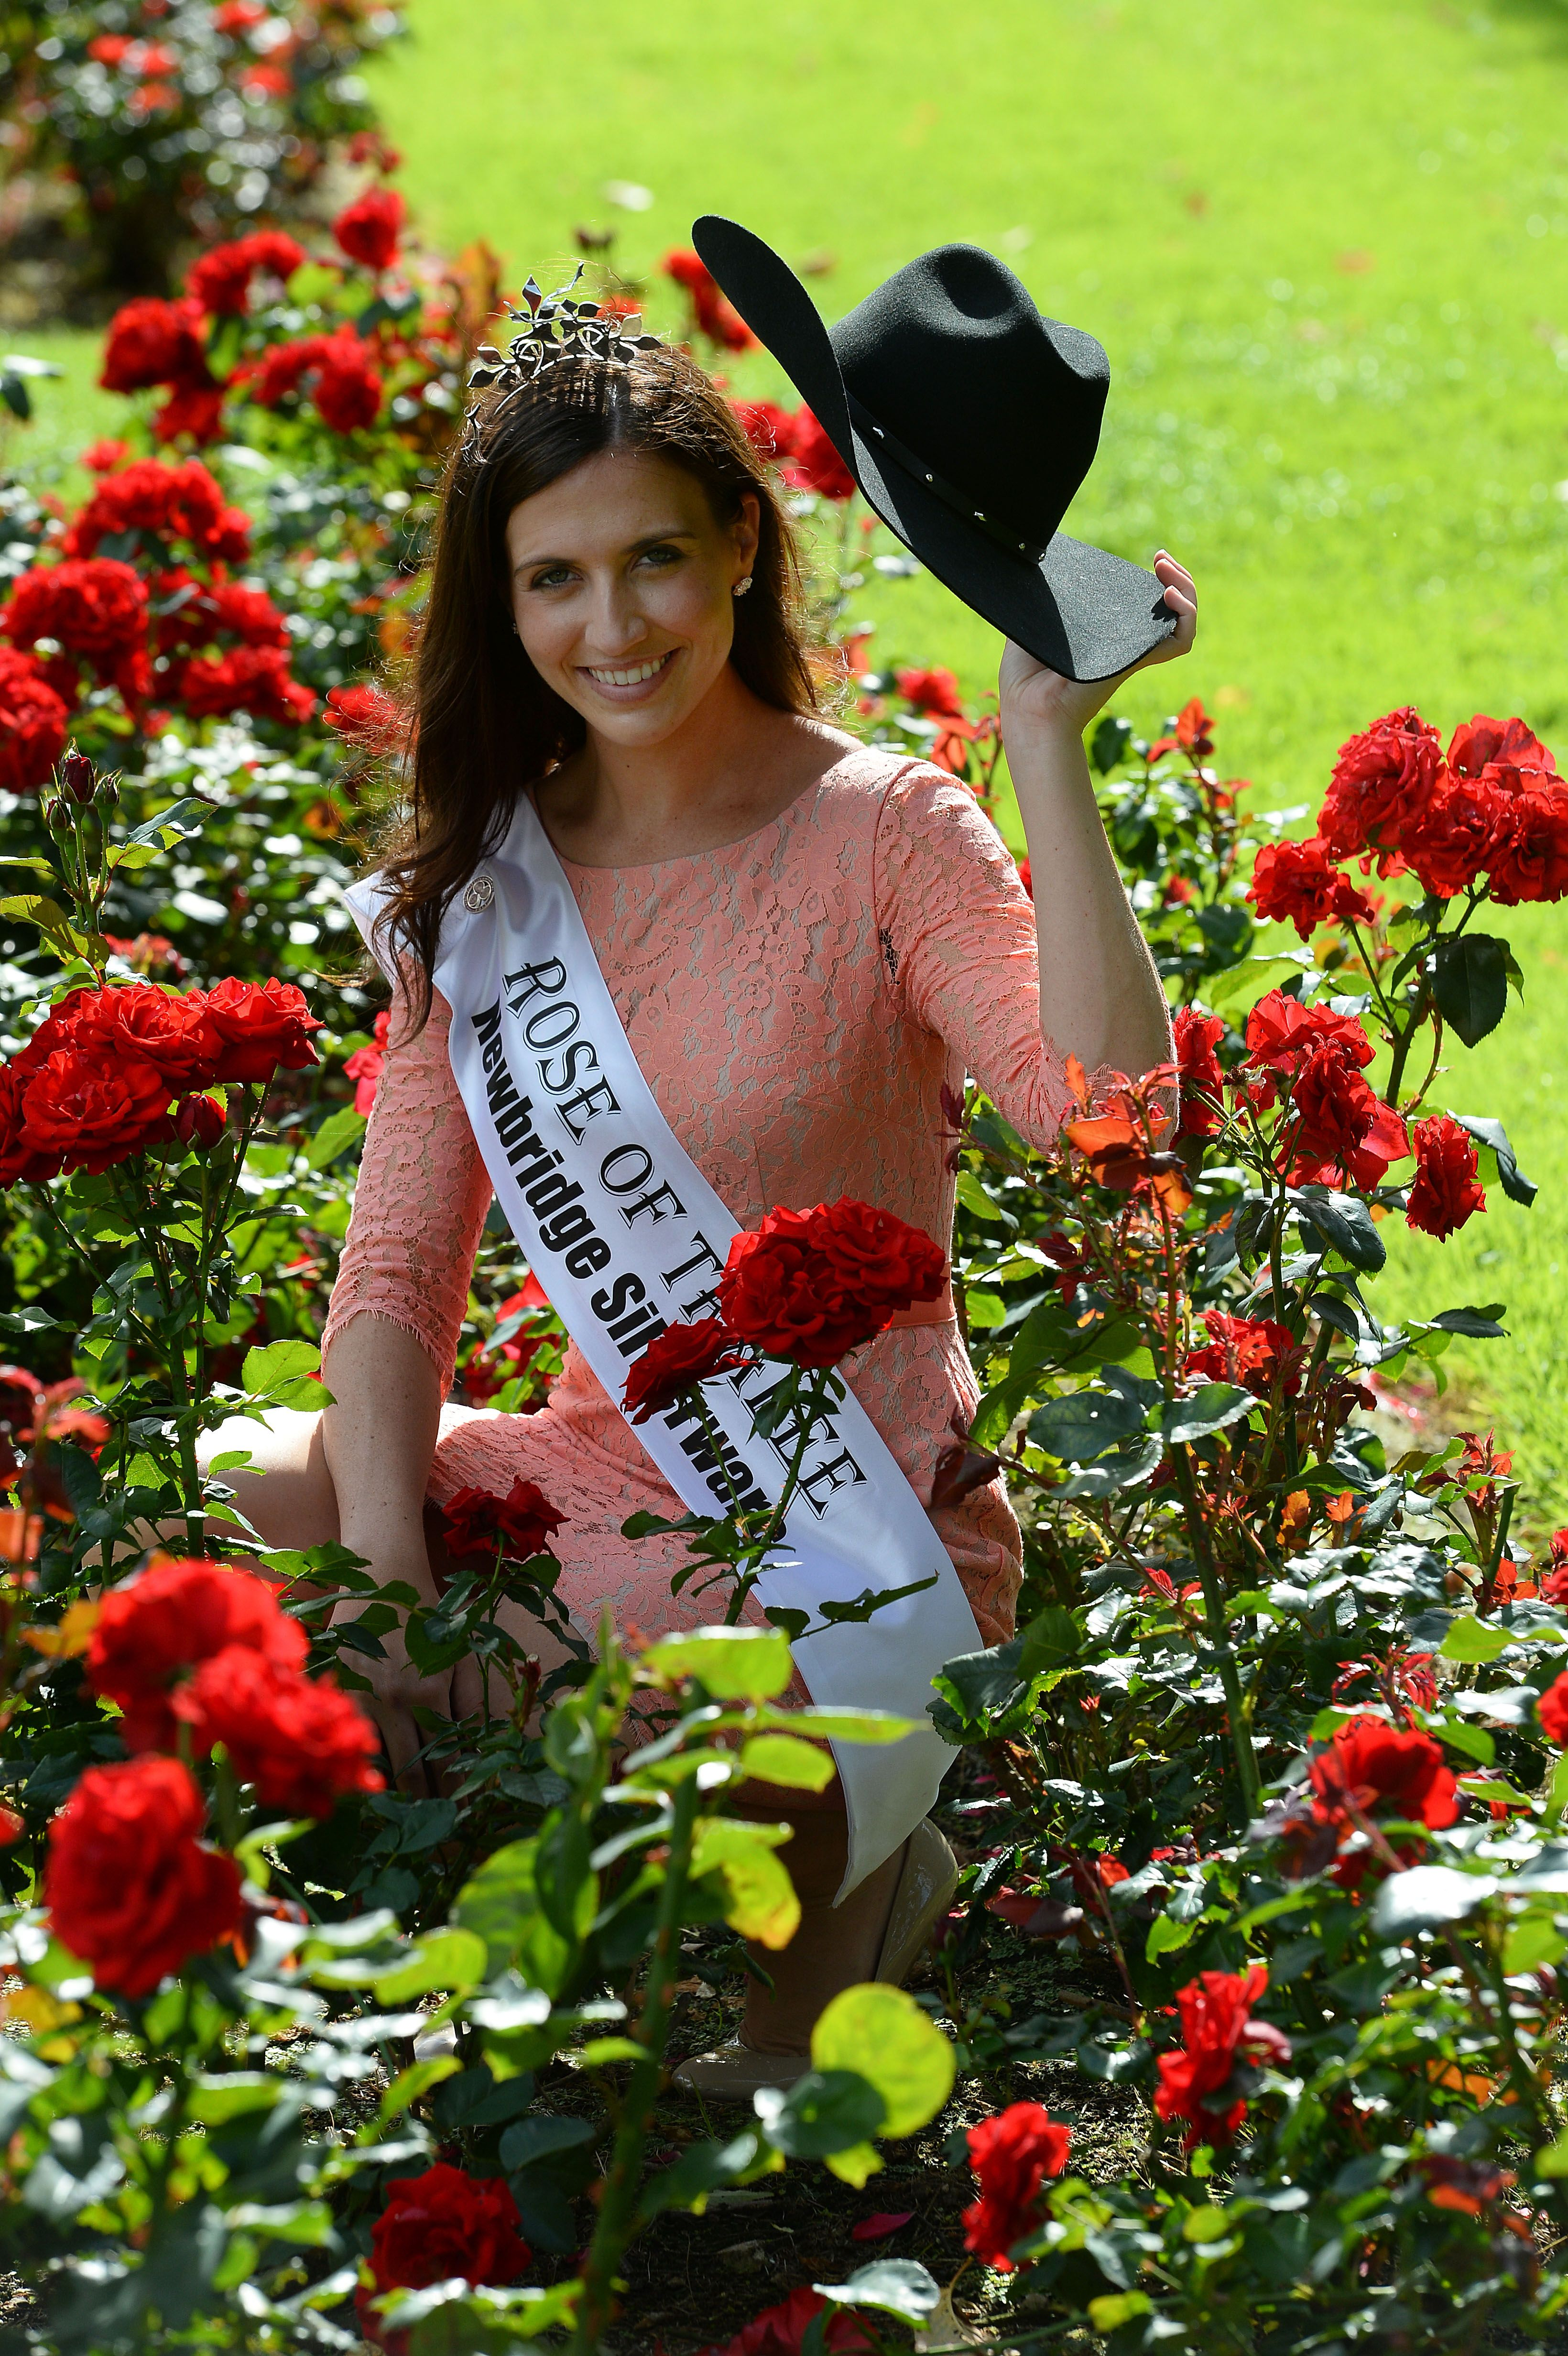 Rose Of Tralee Amp Texas Rose Haley In The Rose Garden Tralee The Rose Of Tralee European Designs Rose Garden